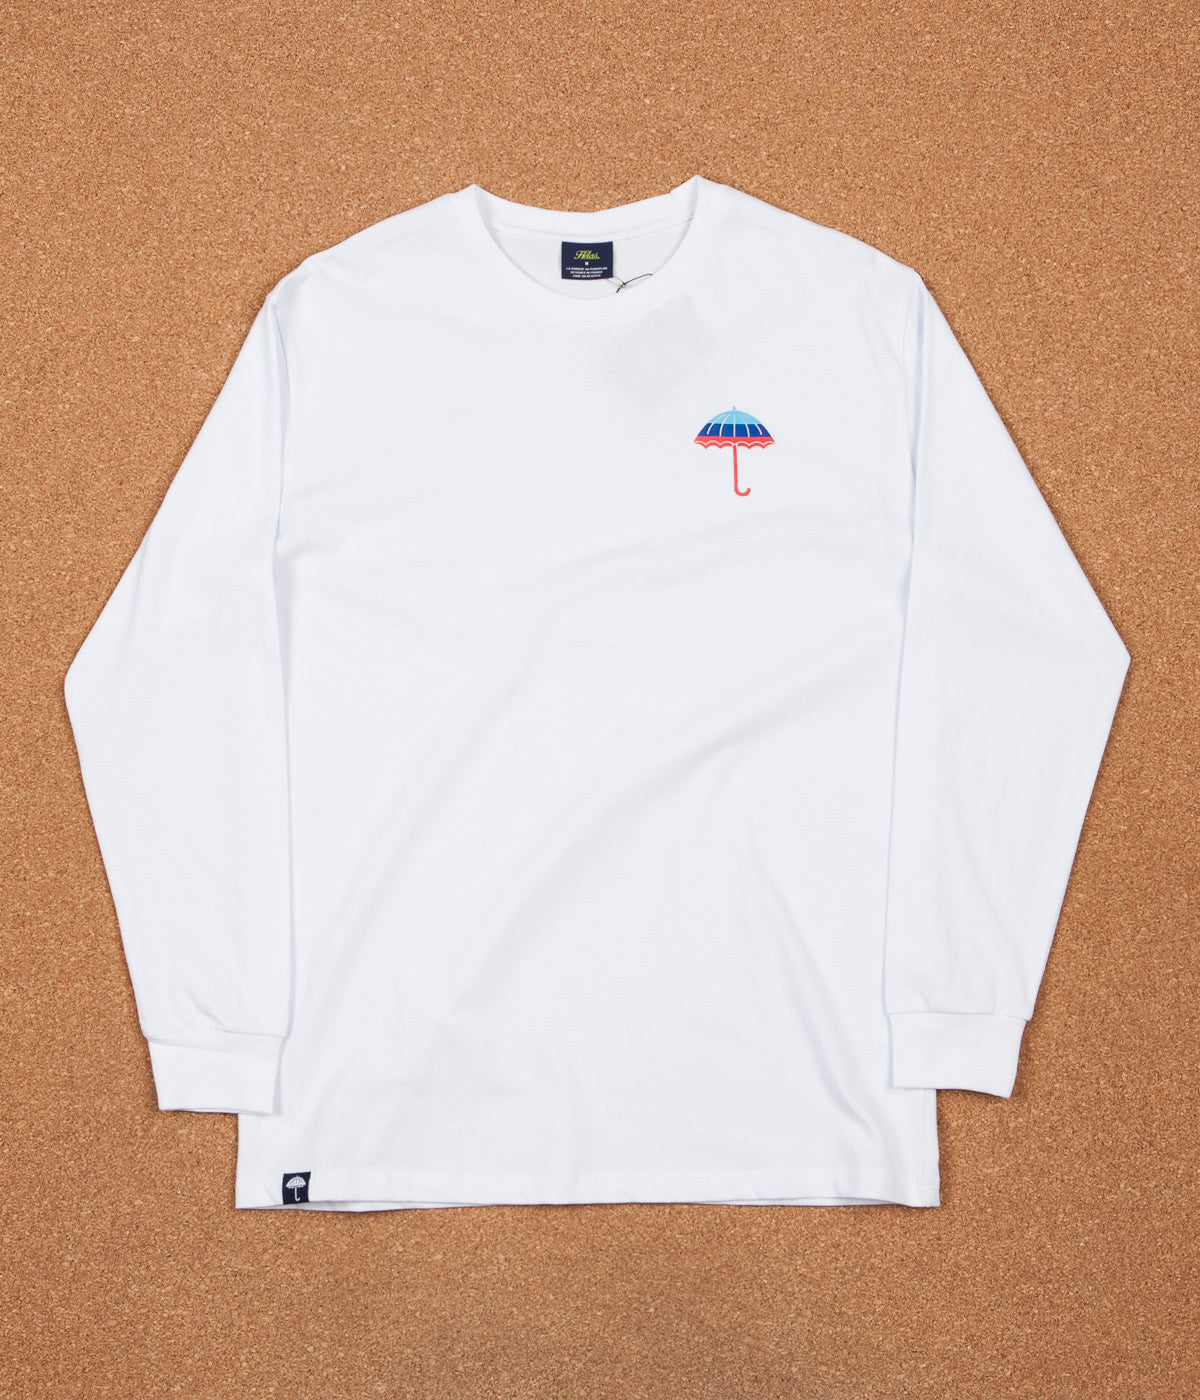 Helas Umbrella Long Sleeve T-Shirt - White / Blue / Navy / Red